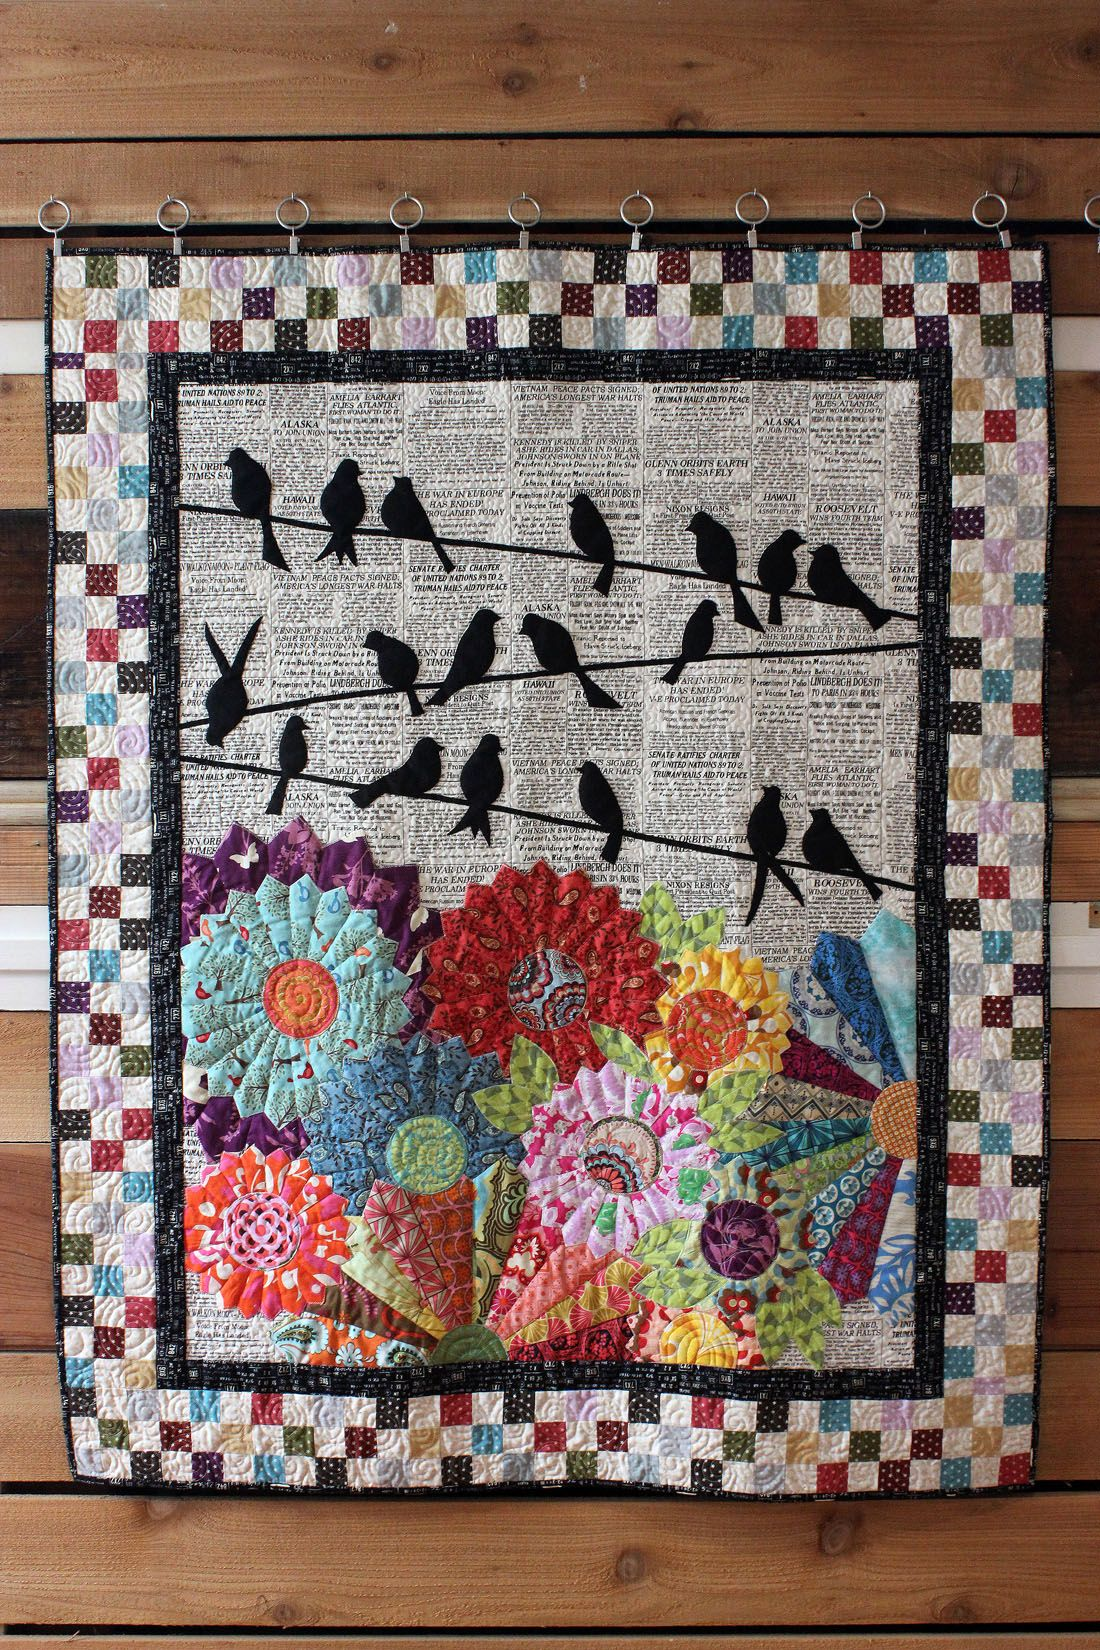 The Quilt Show with Alex Anderson and Ricky Tims - Featuring quilting classes from various artists